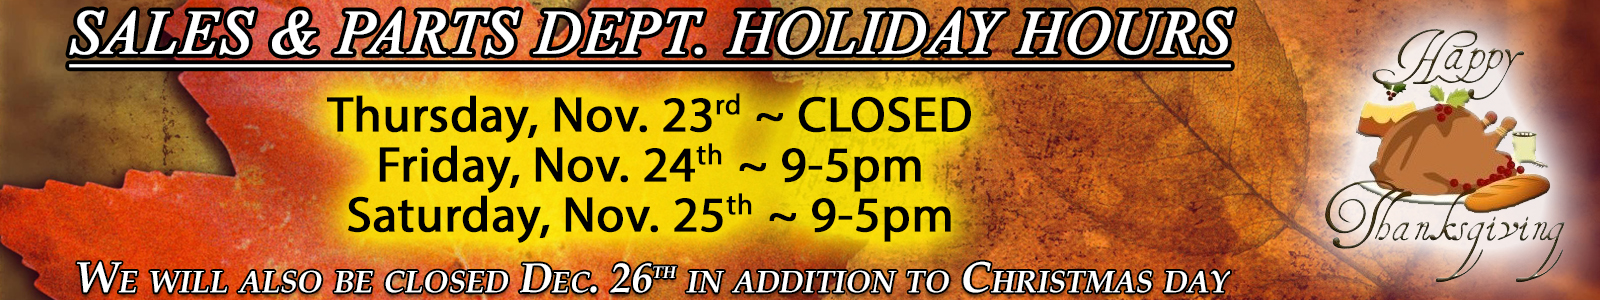 Thanksgiving Hours: CLOSED NOV. 23 ~ Open 9-5pm Nov. 24 & 25